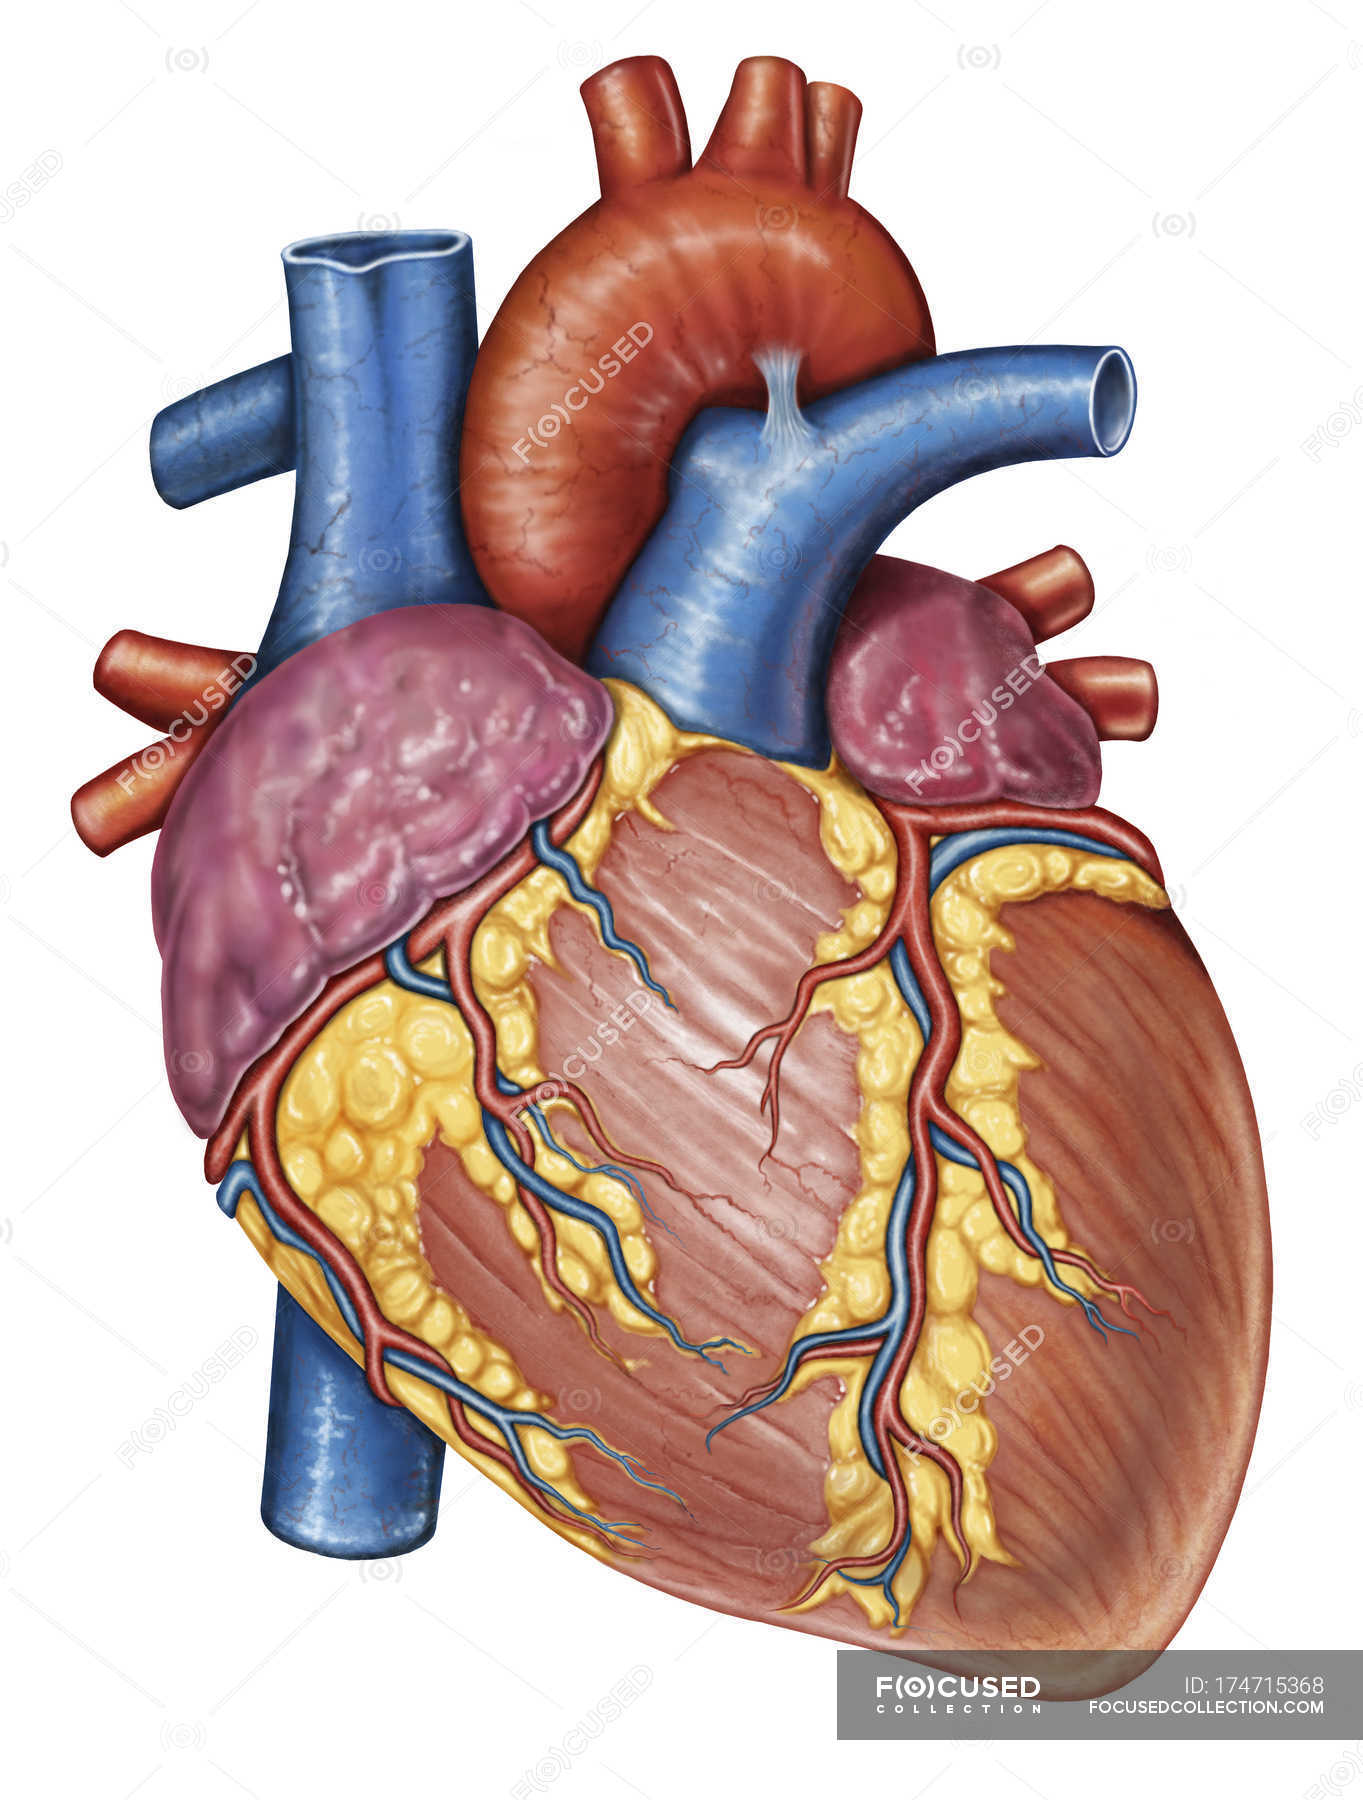 Gross Anatomy Of The Human Heart White Background Blood Vessels